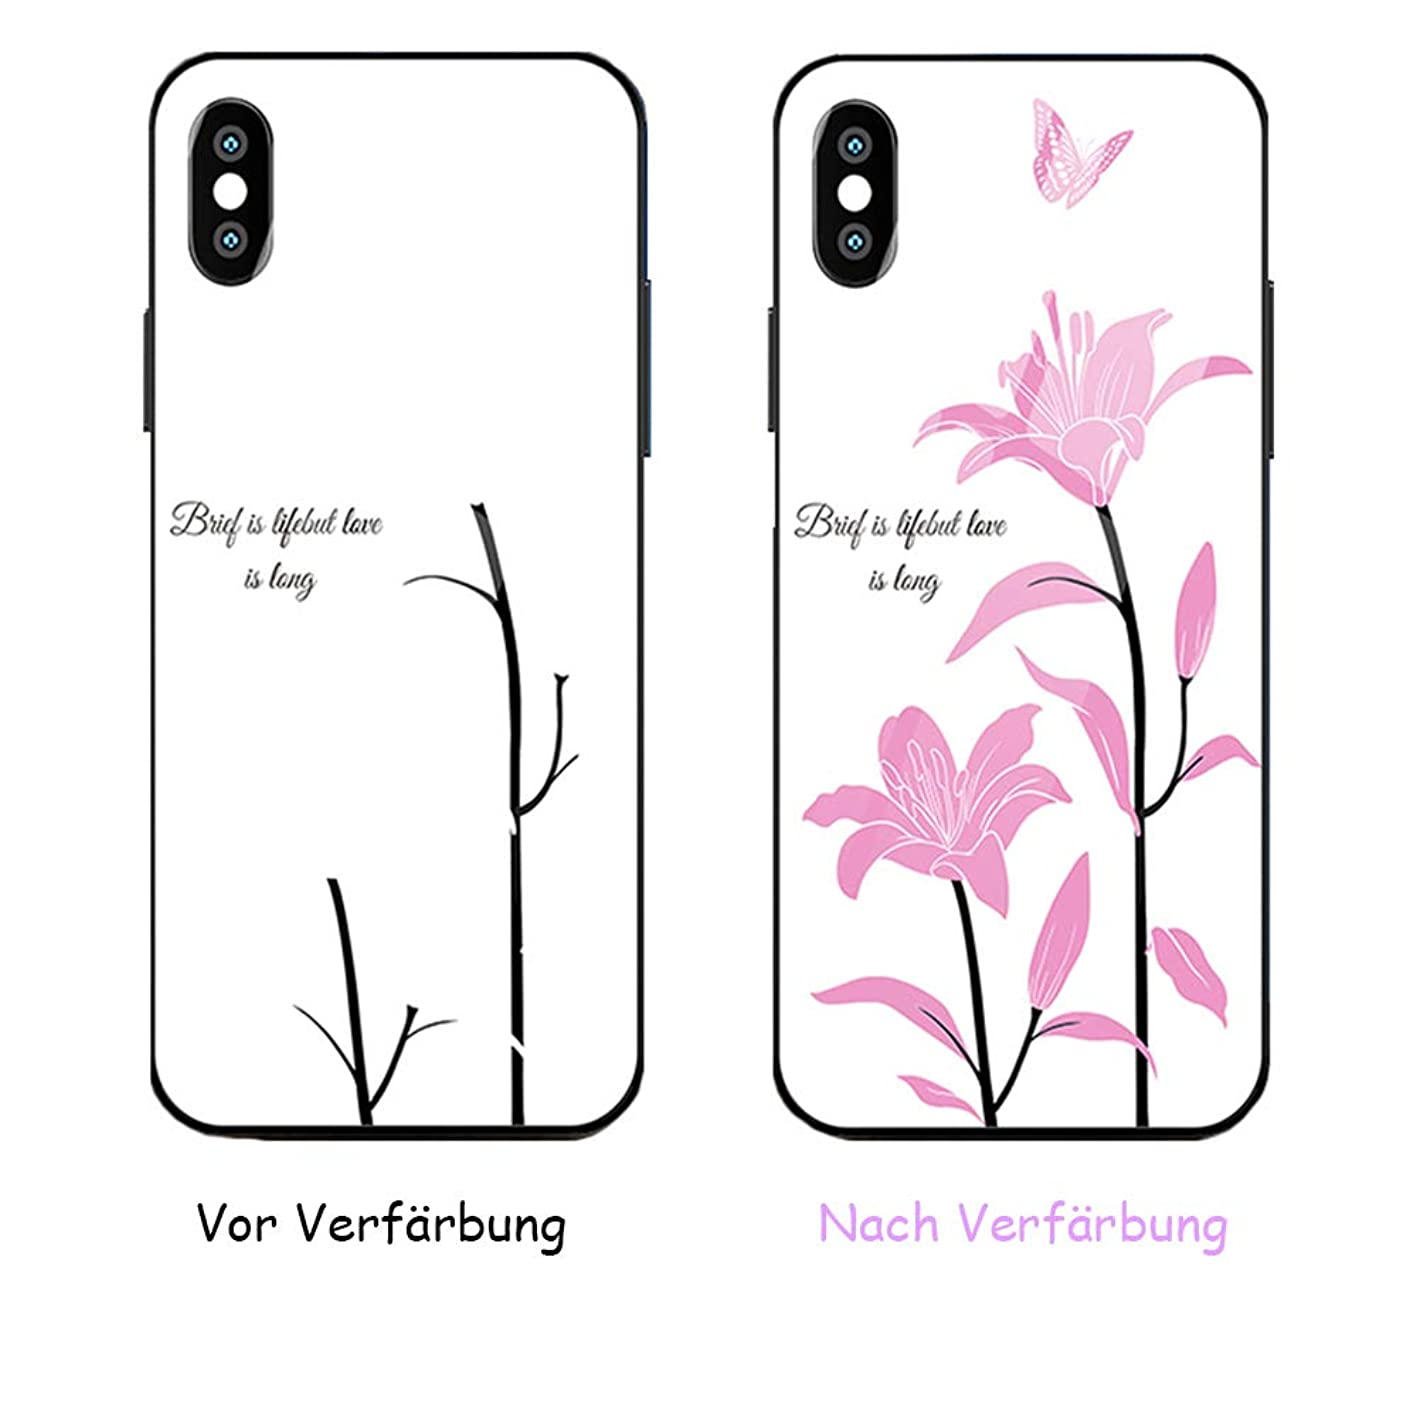 JZWDMD for iPhone X/XS Case, iPhone Xs MAX Case Color Change Glass Women's Silicone Fall Prevention Personality Creative All Inclusive Fashion Ultrathin Protective Cover Soft Shell wjbjlqlcjbt308